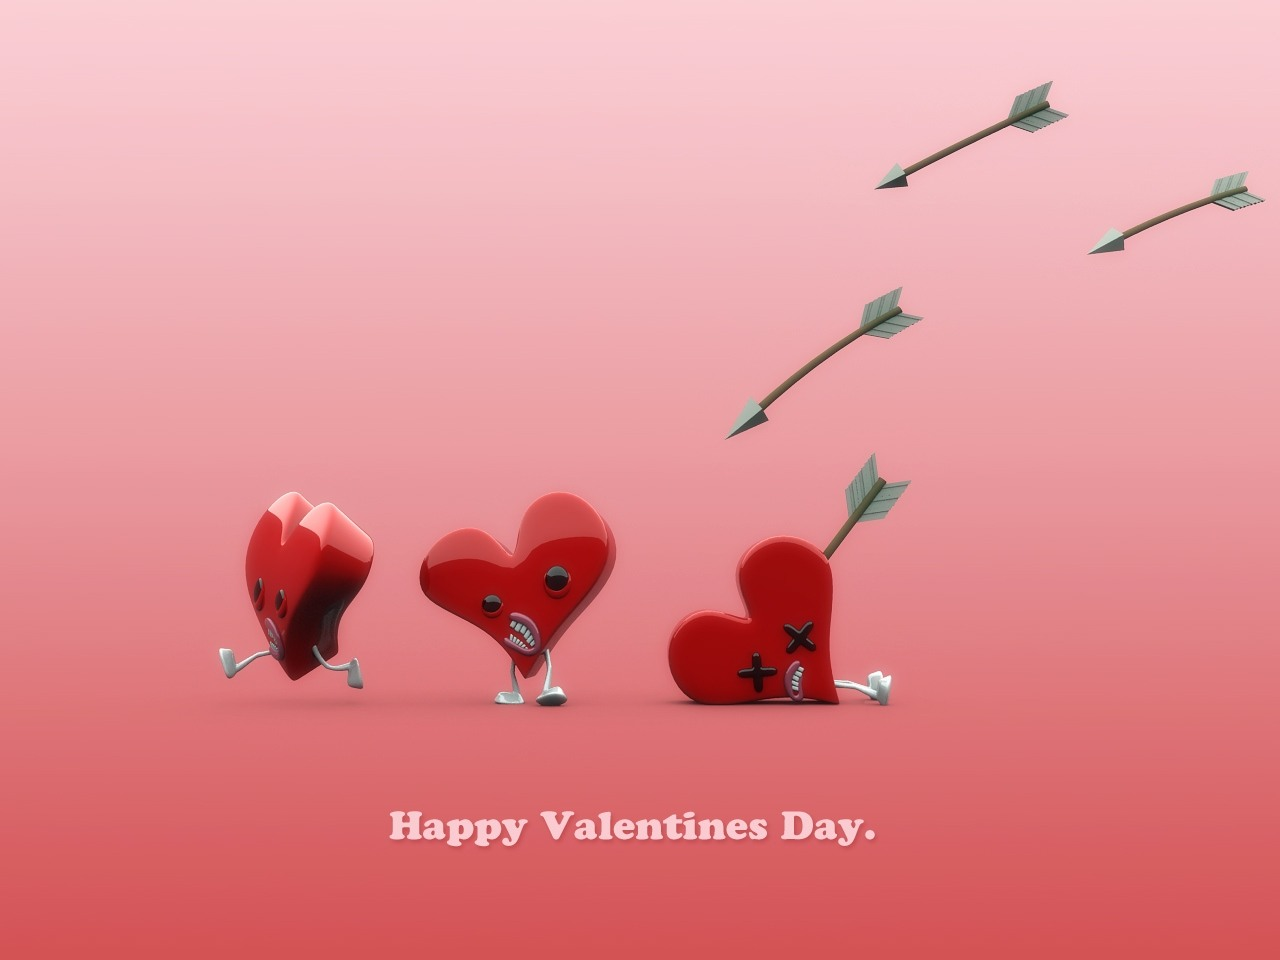 Happy Valentines Day heart Arrow Picture